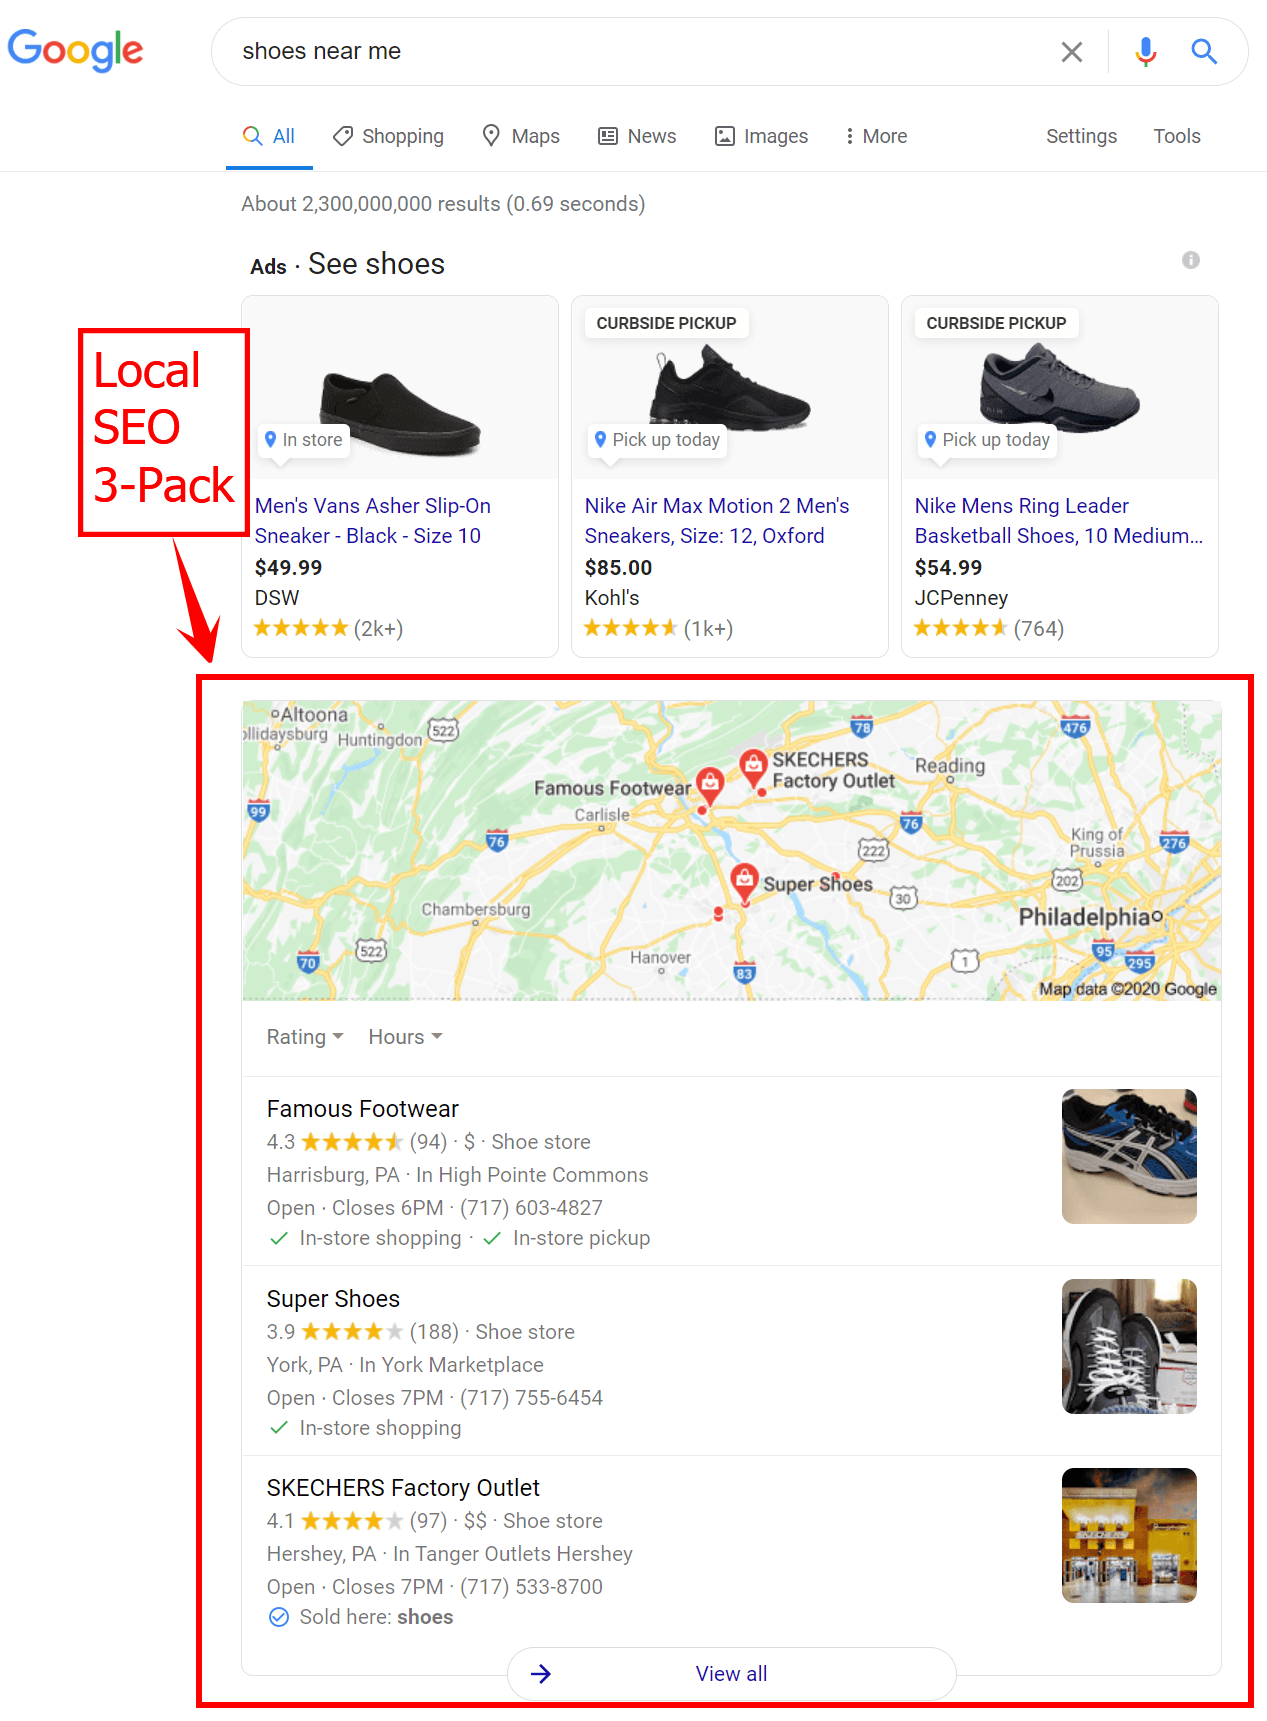 """Local SEO 3-pack results for a Google search of """"shoes near me"""""""